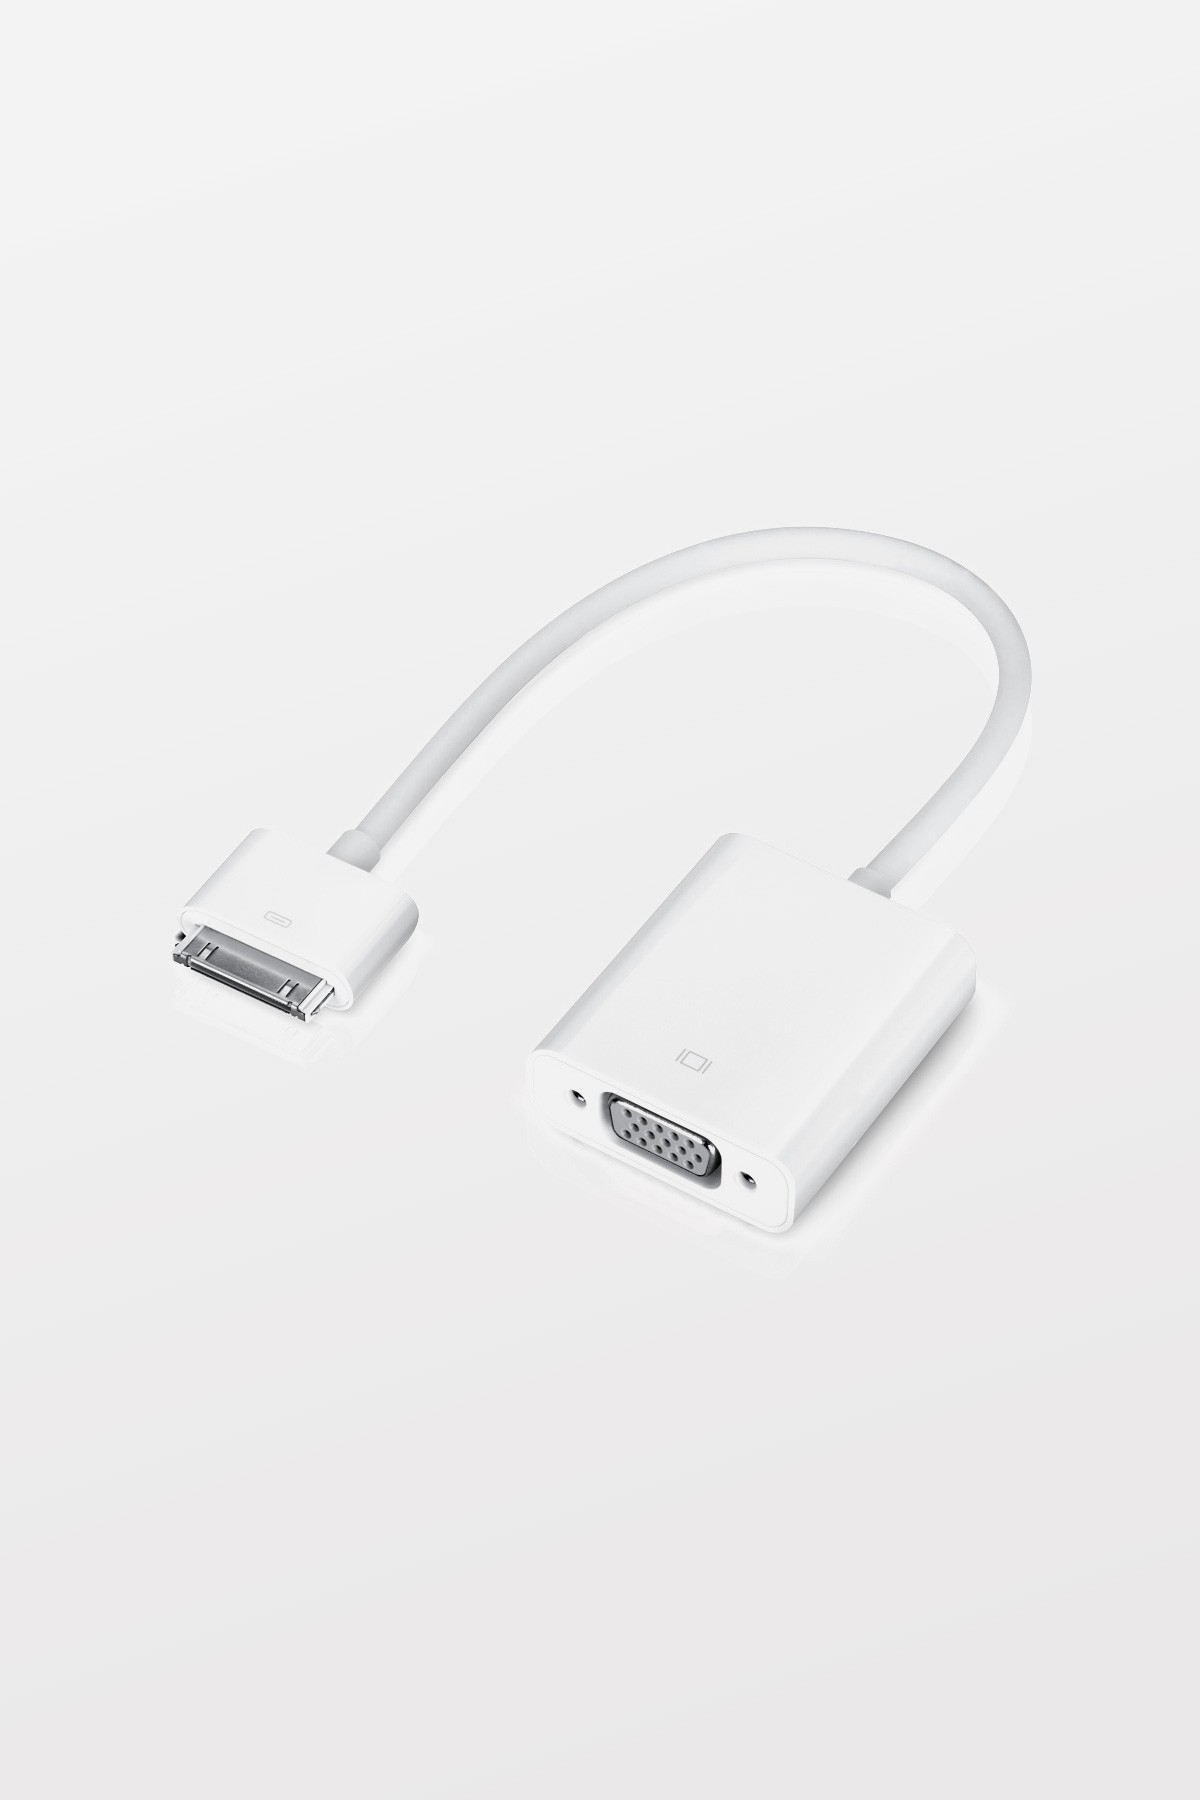 Apple iPad Dock Connector to VGA Adapter